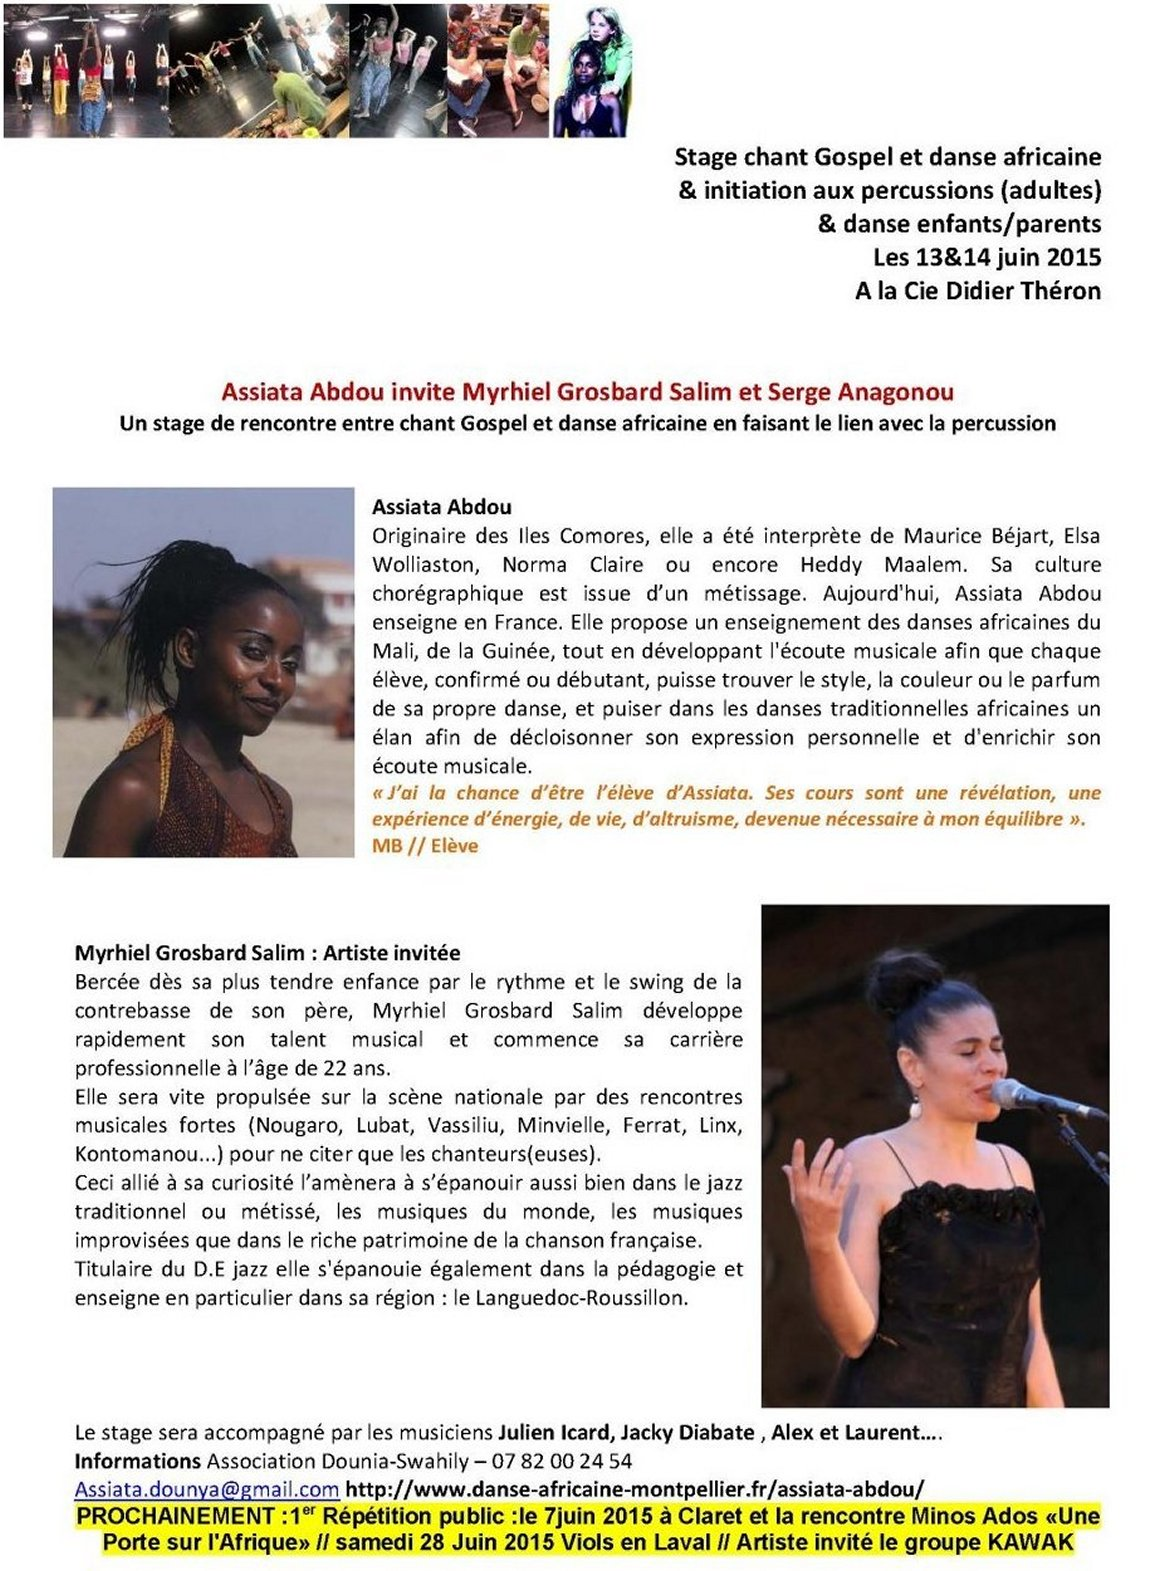 stage chants percu danse 13juin15 2